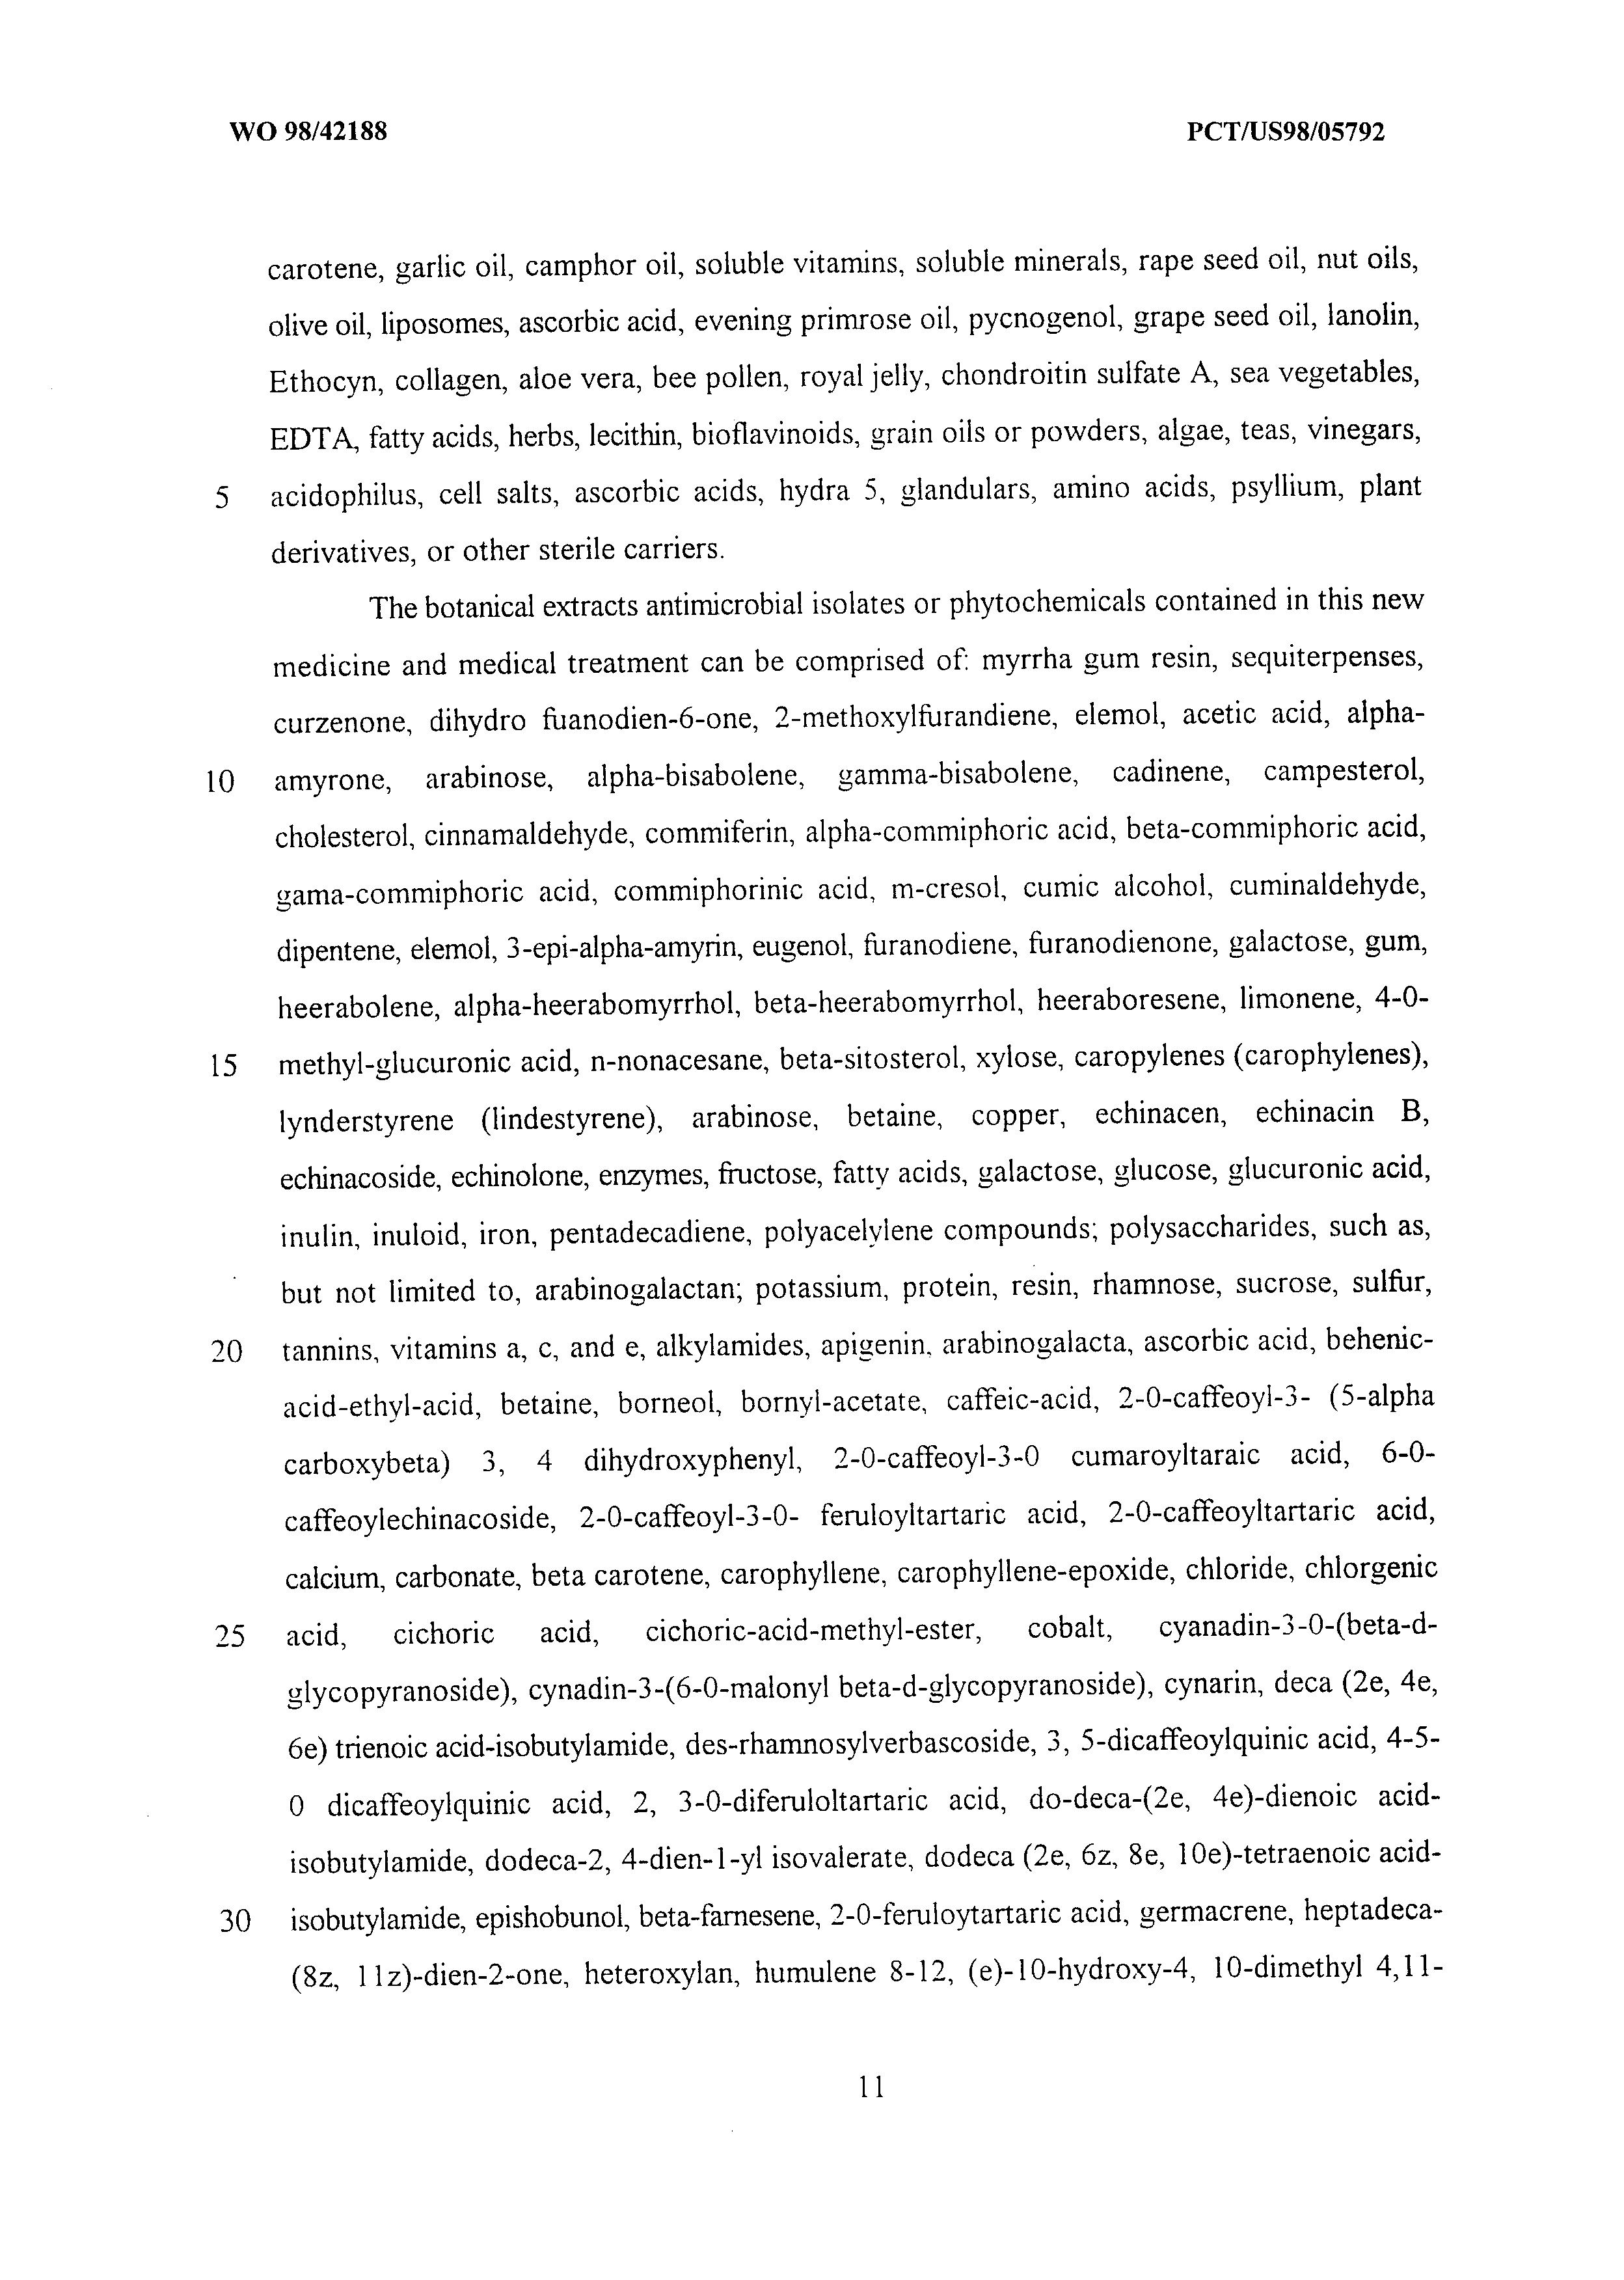 WO 1998/042188 A1 - Antimicrobial Prevention And Treatment